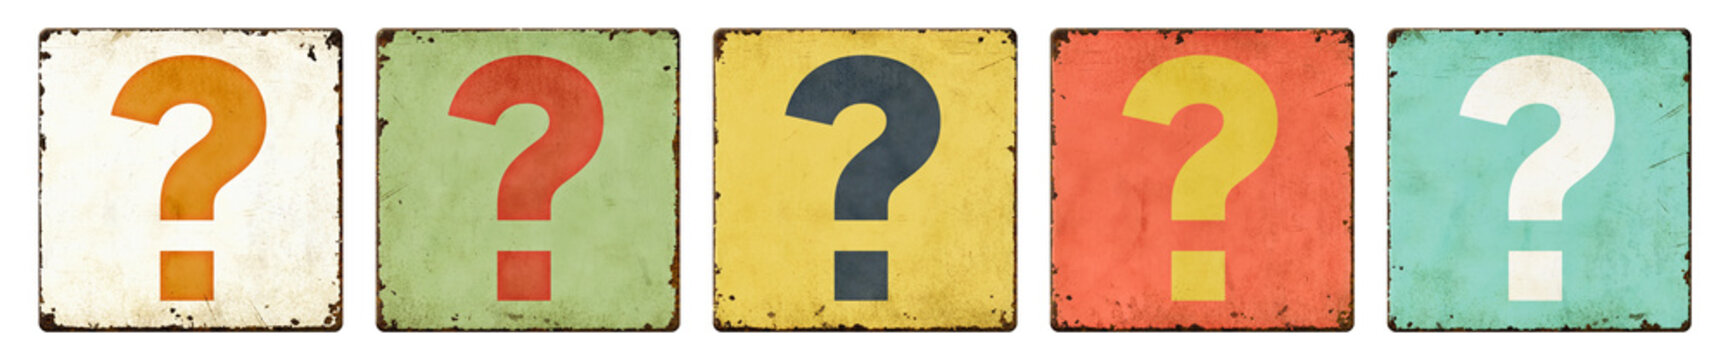 Five vintage tin signs on a white background - Question mark